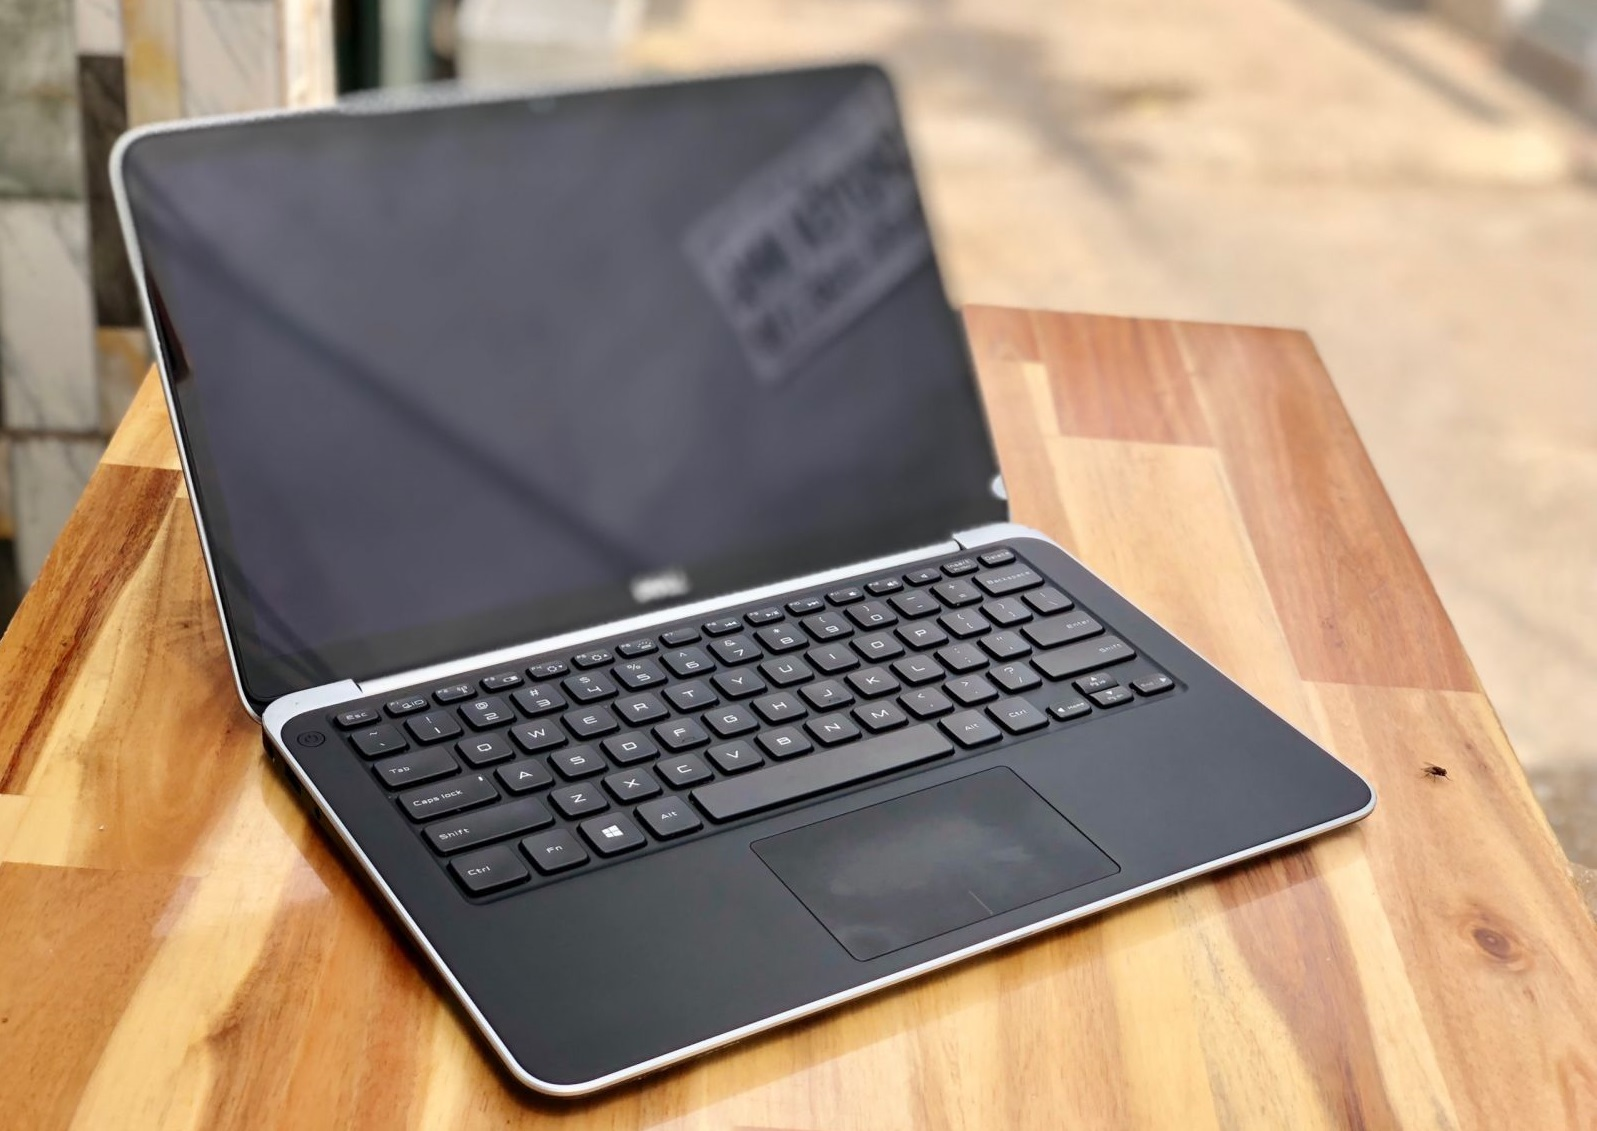 bán laptop dell xps 9333